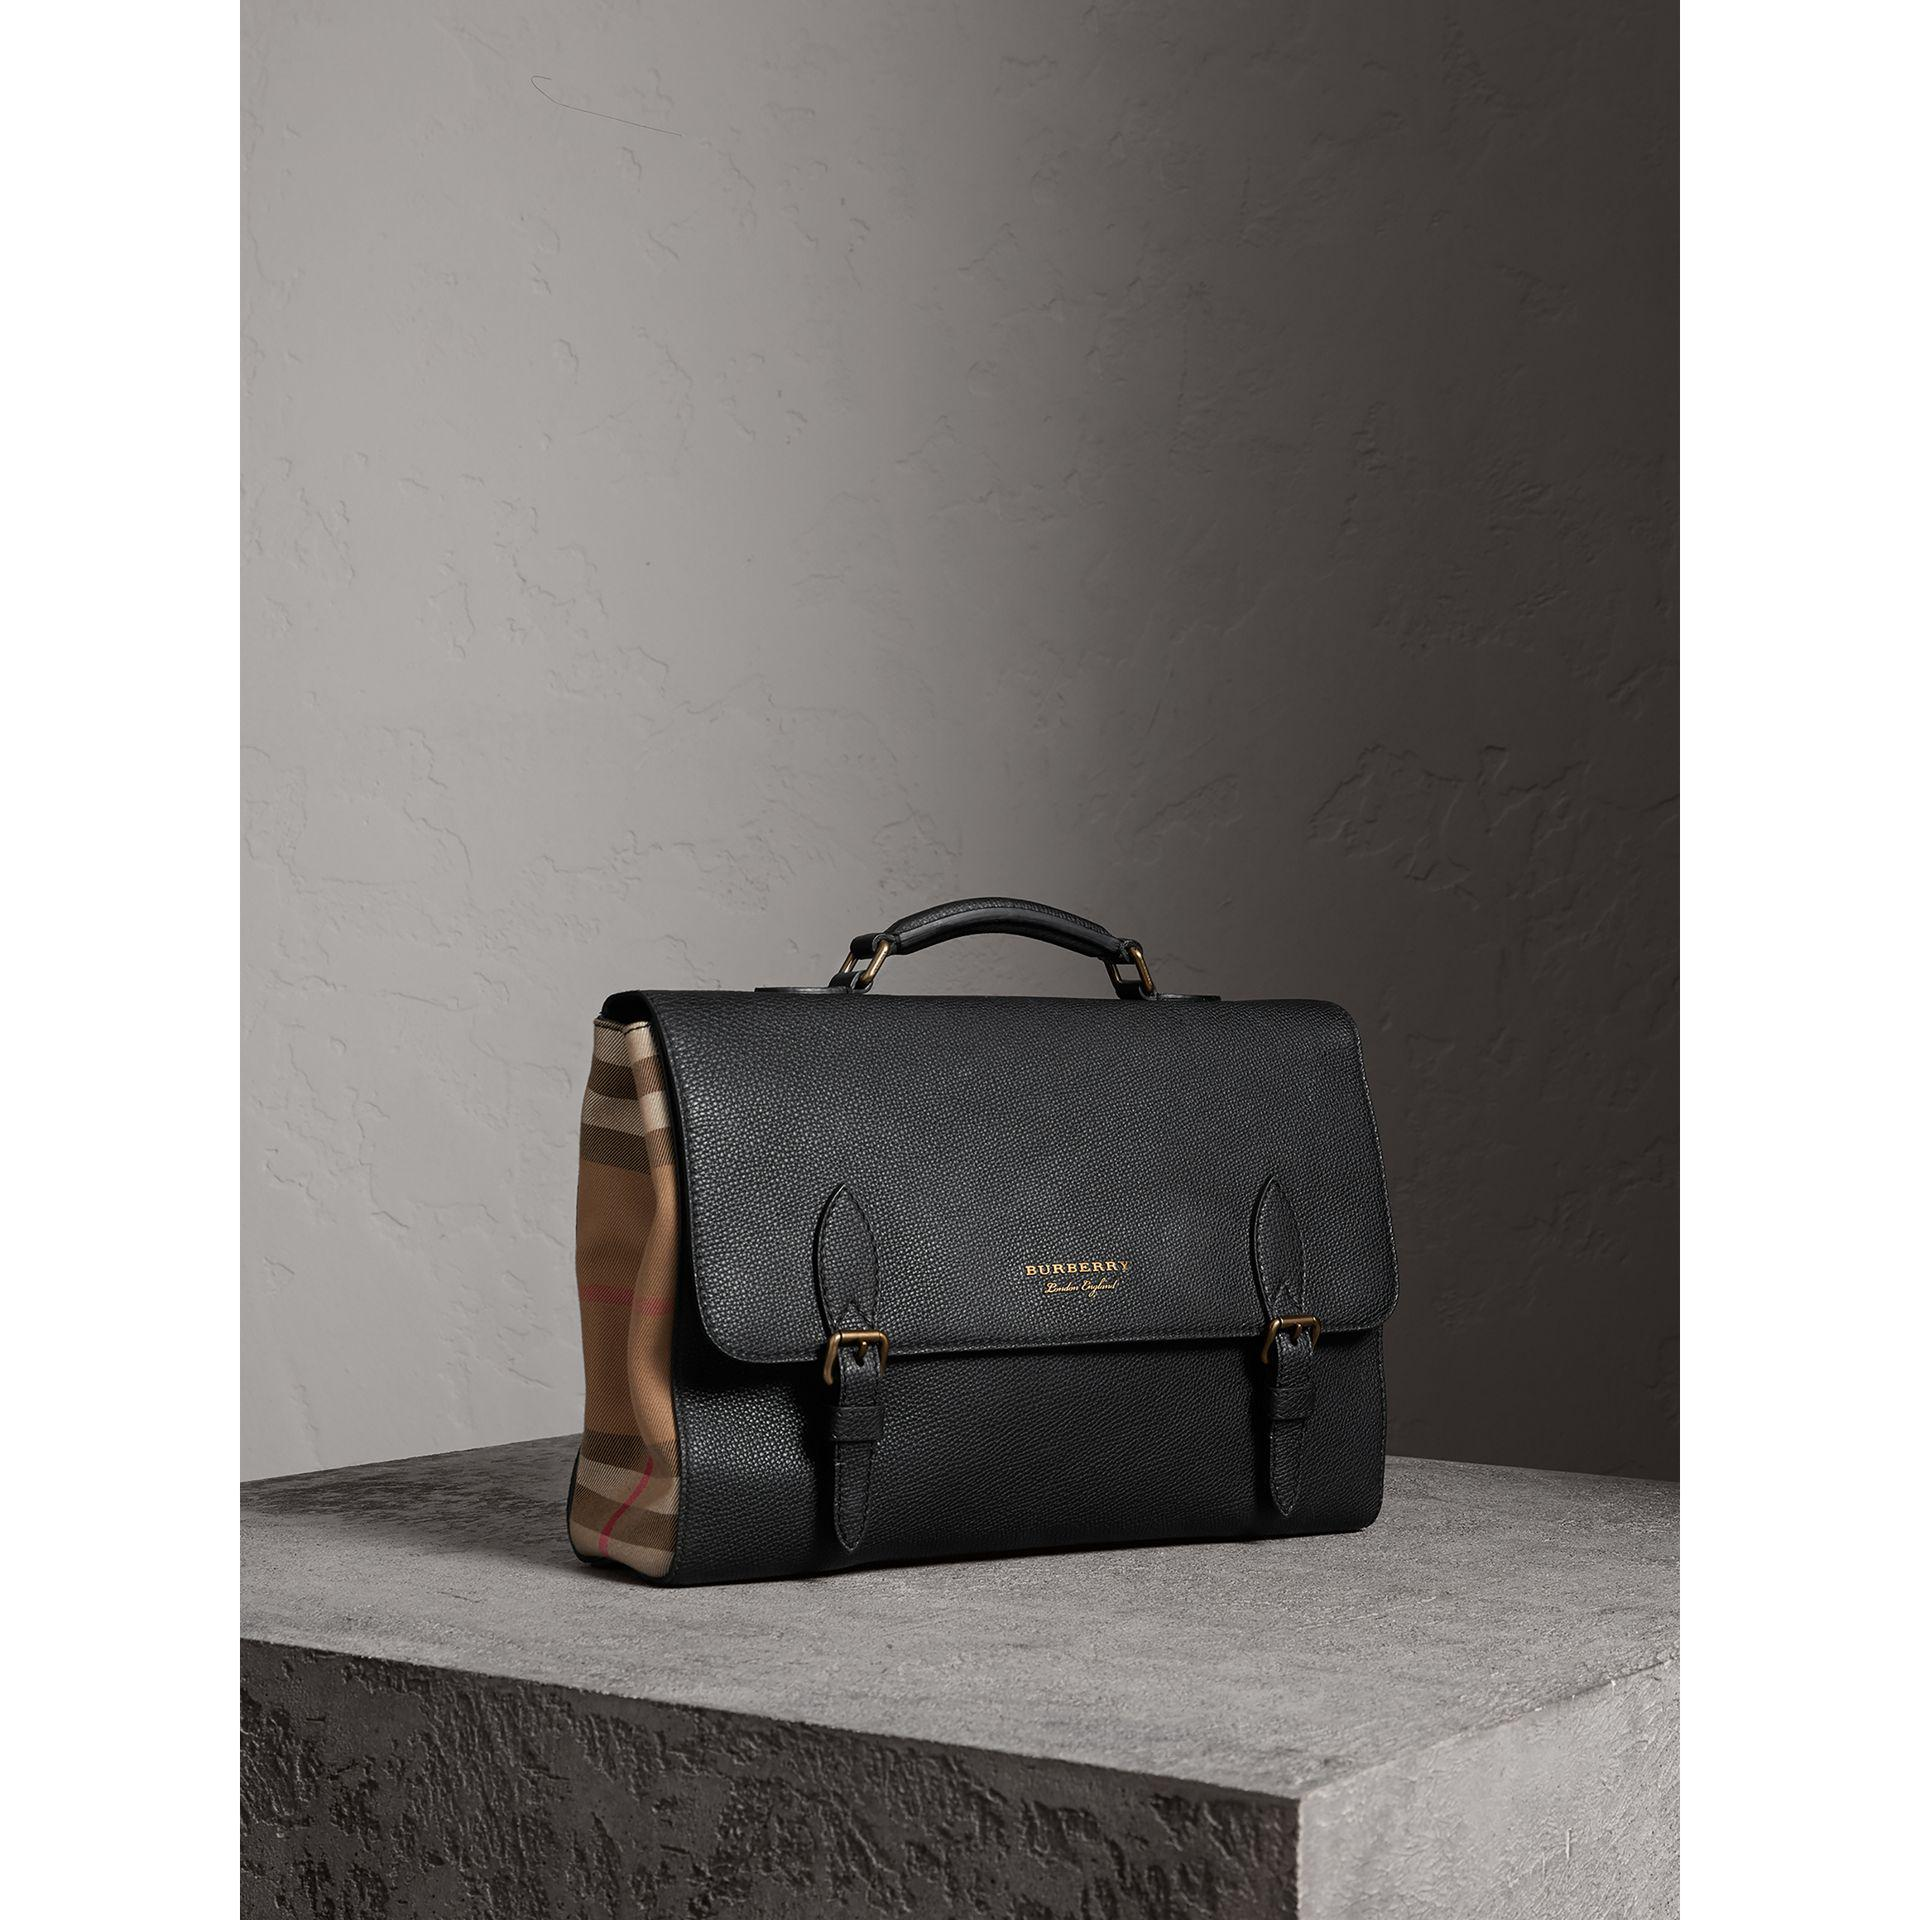 Lyst - Burberry Leather And House Check Satchel Black in Black for Men 38a54703c4